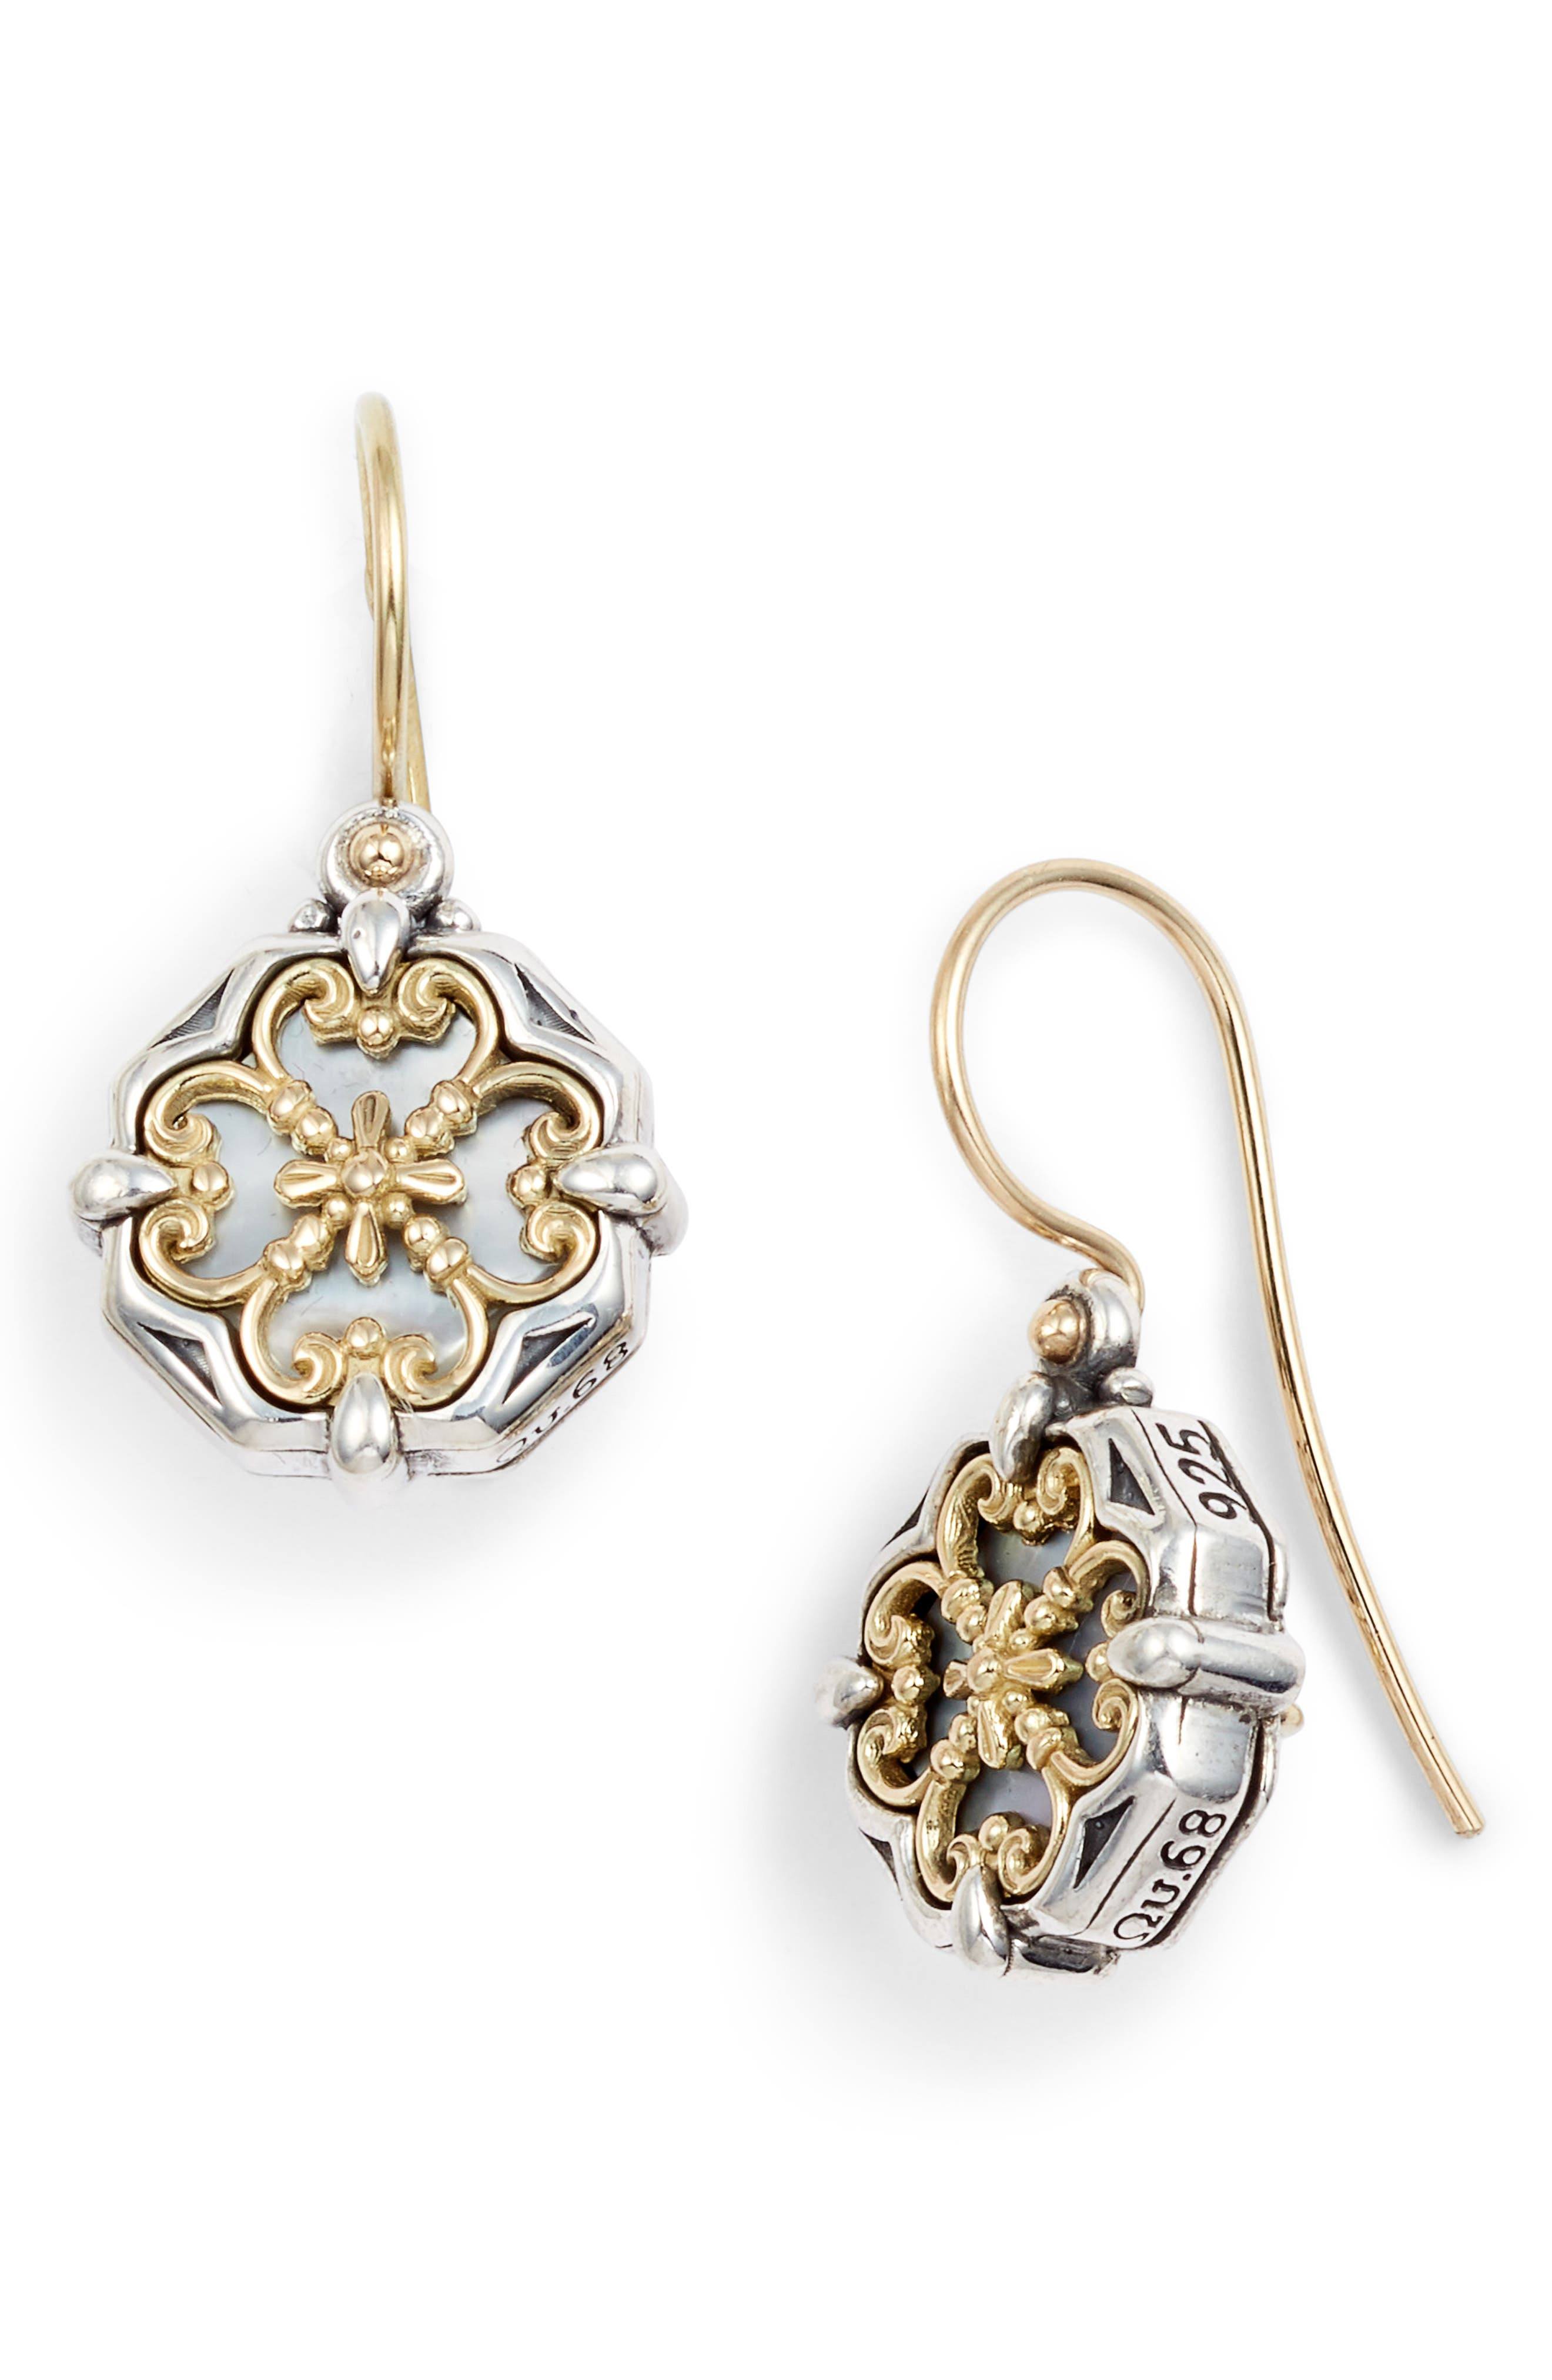 Etched Sterling Silver and Gold Drop Earrings,                             Main thumbnail 1, color,                             Silver/ Gold/ White